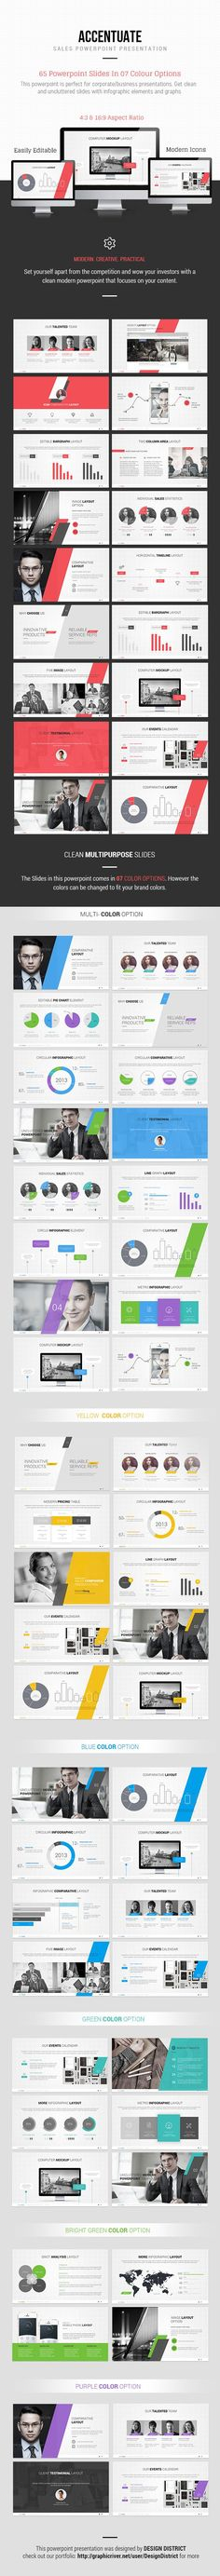 free marketing plan powerpoint template Free PowerPoint